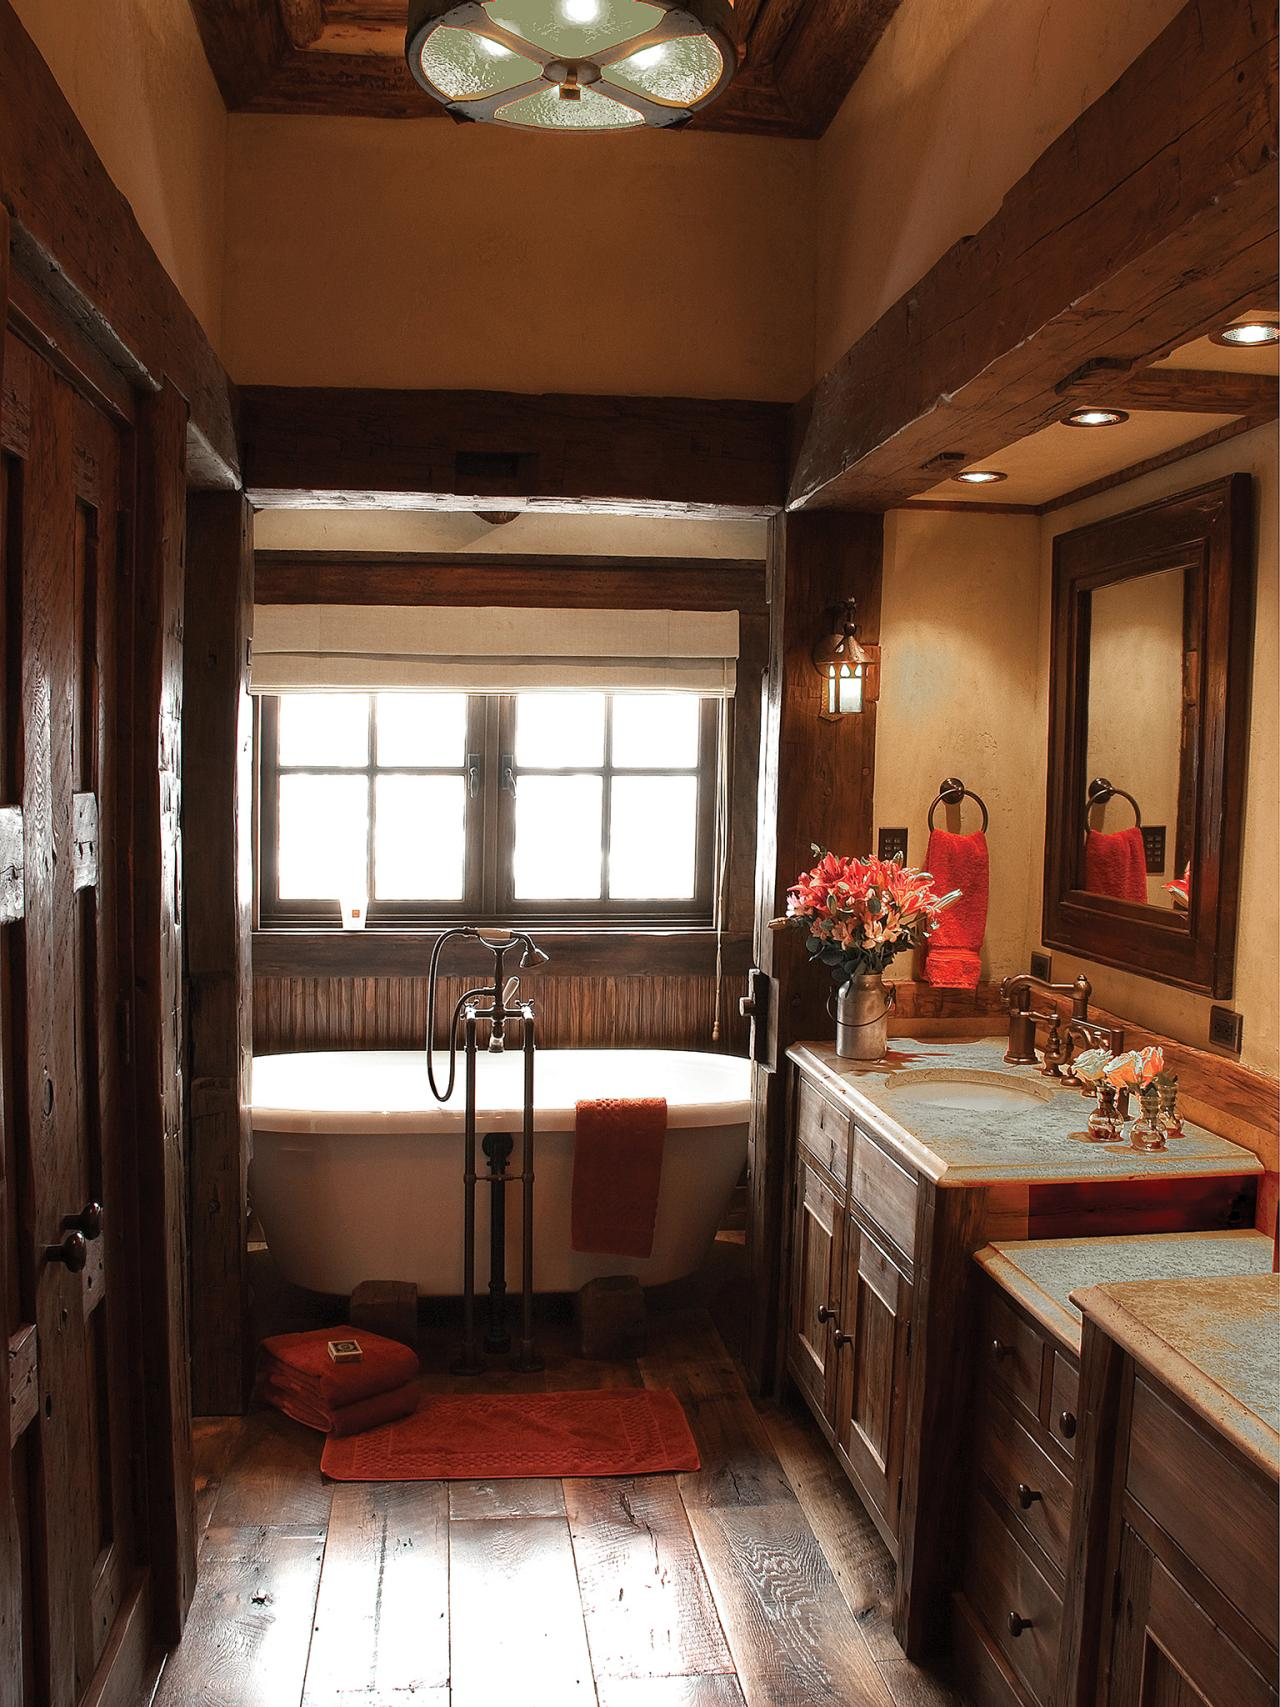 Add Glamour With Small Vintage Bathroom Ideas on Small Bathroom Ideas Pictures  id=50168